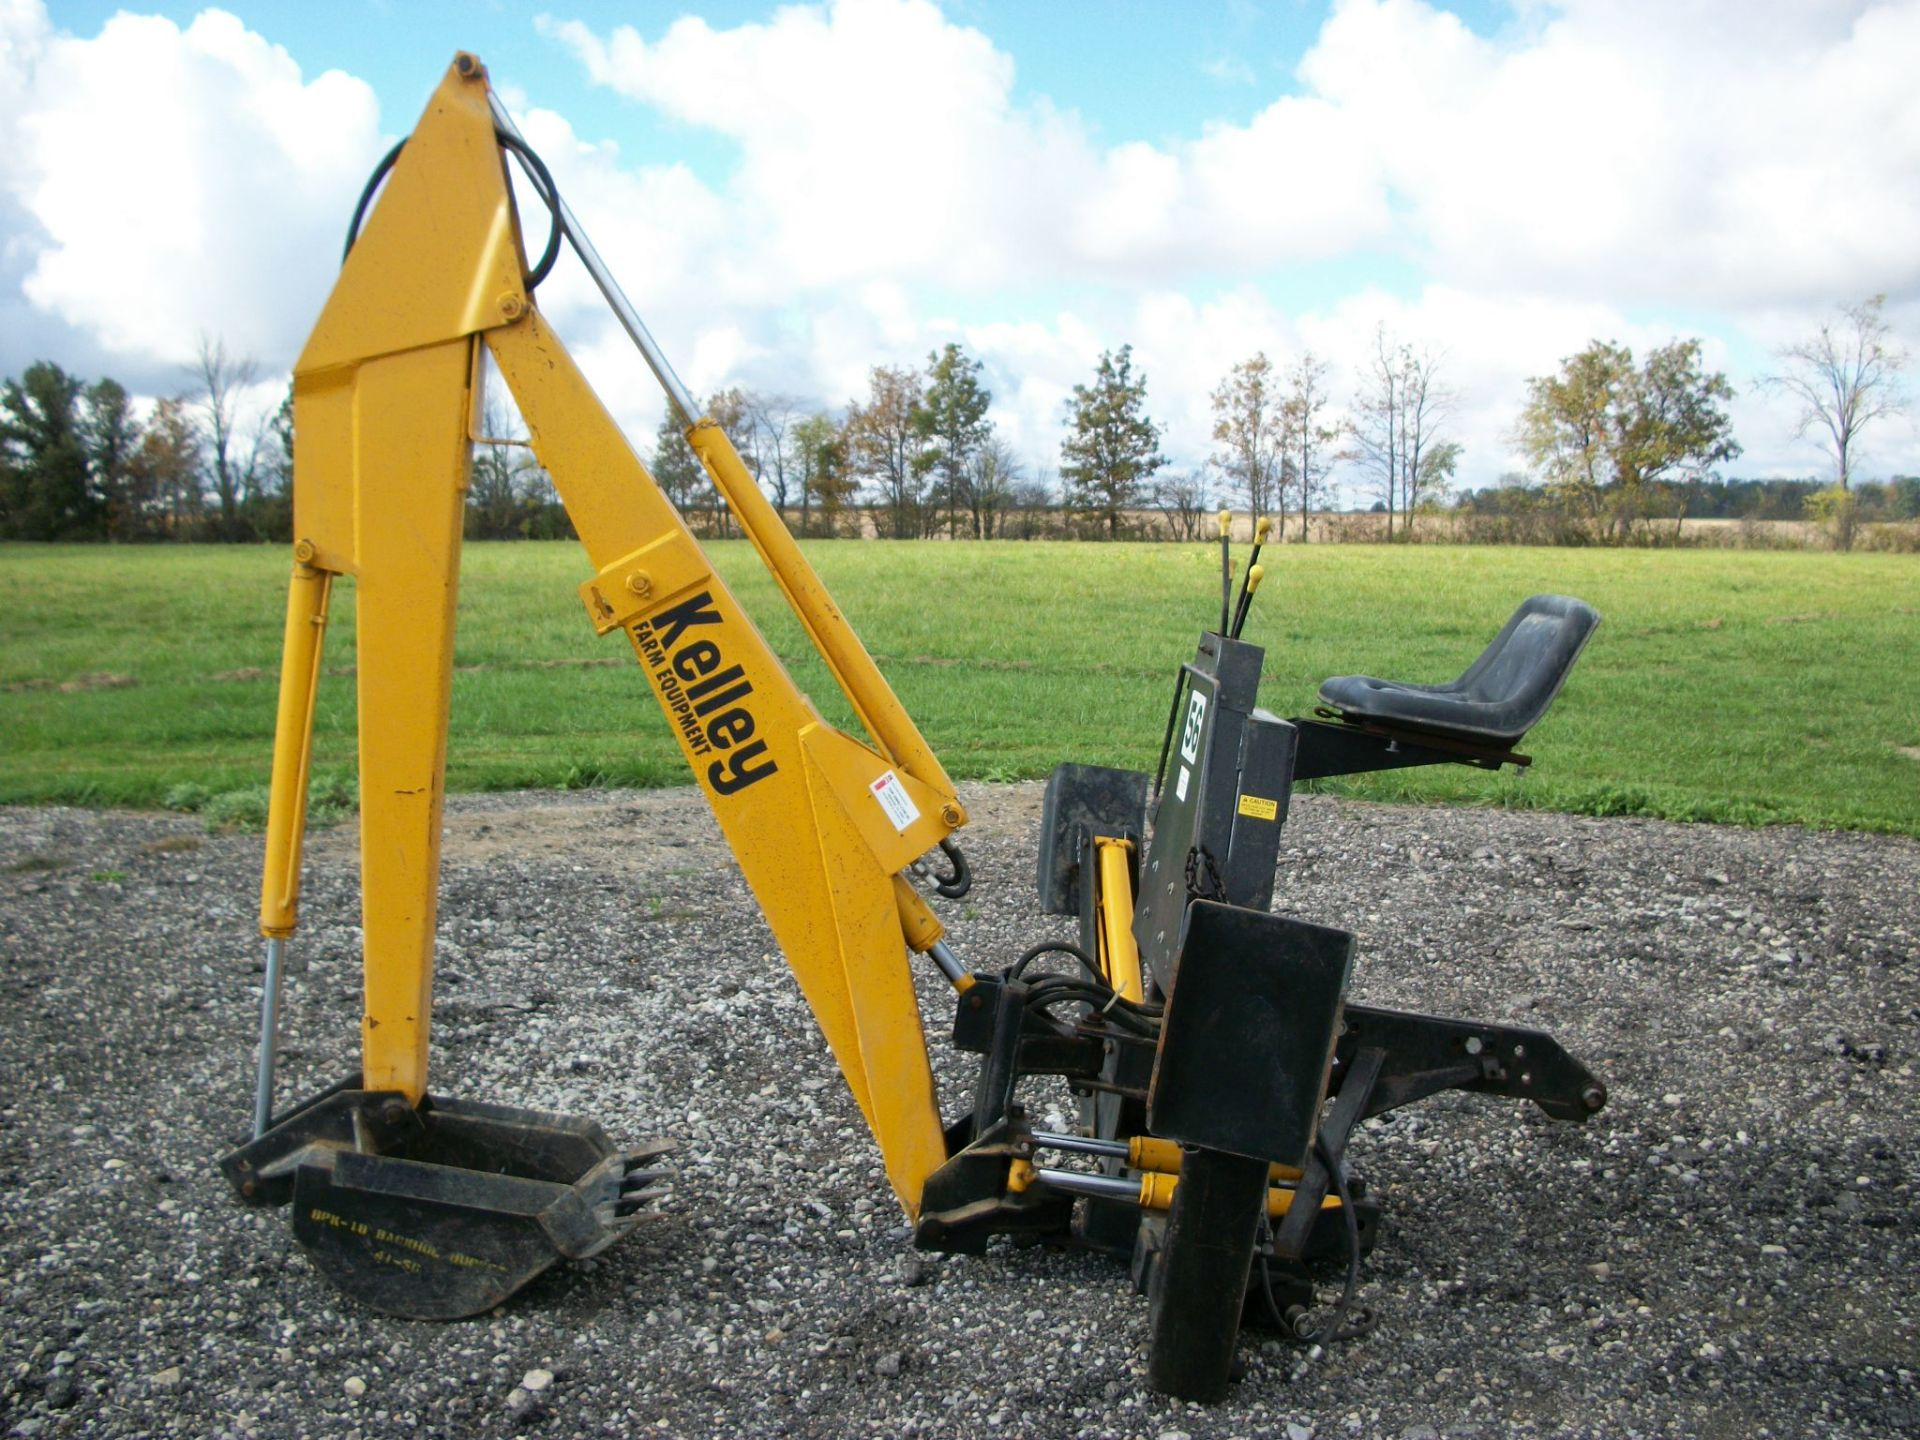 Kelley 56 3PT Backhoe     $3,900